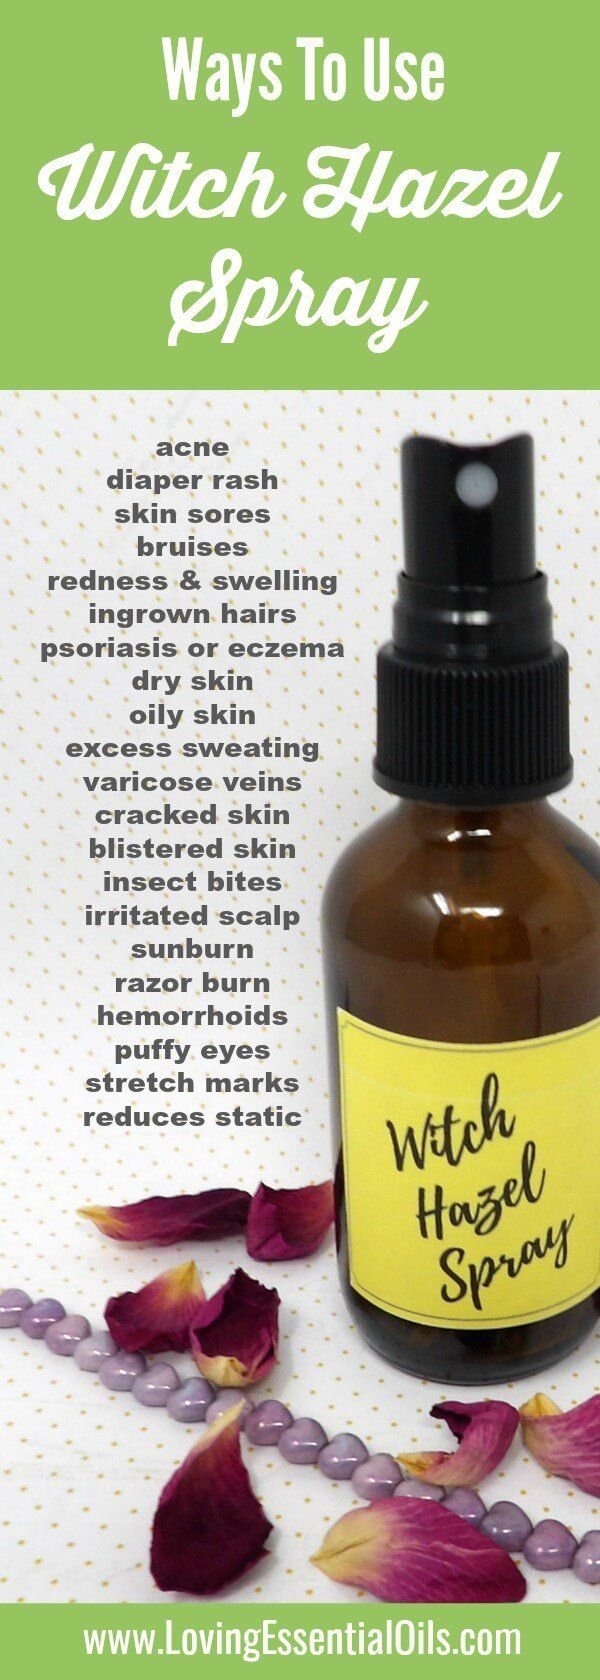 Ways to use witch hazel spray for beauty, skin care and hair care